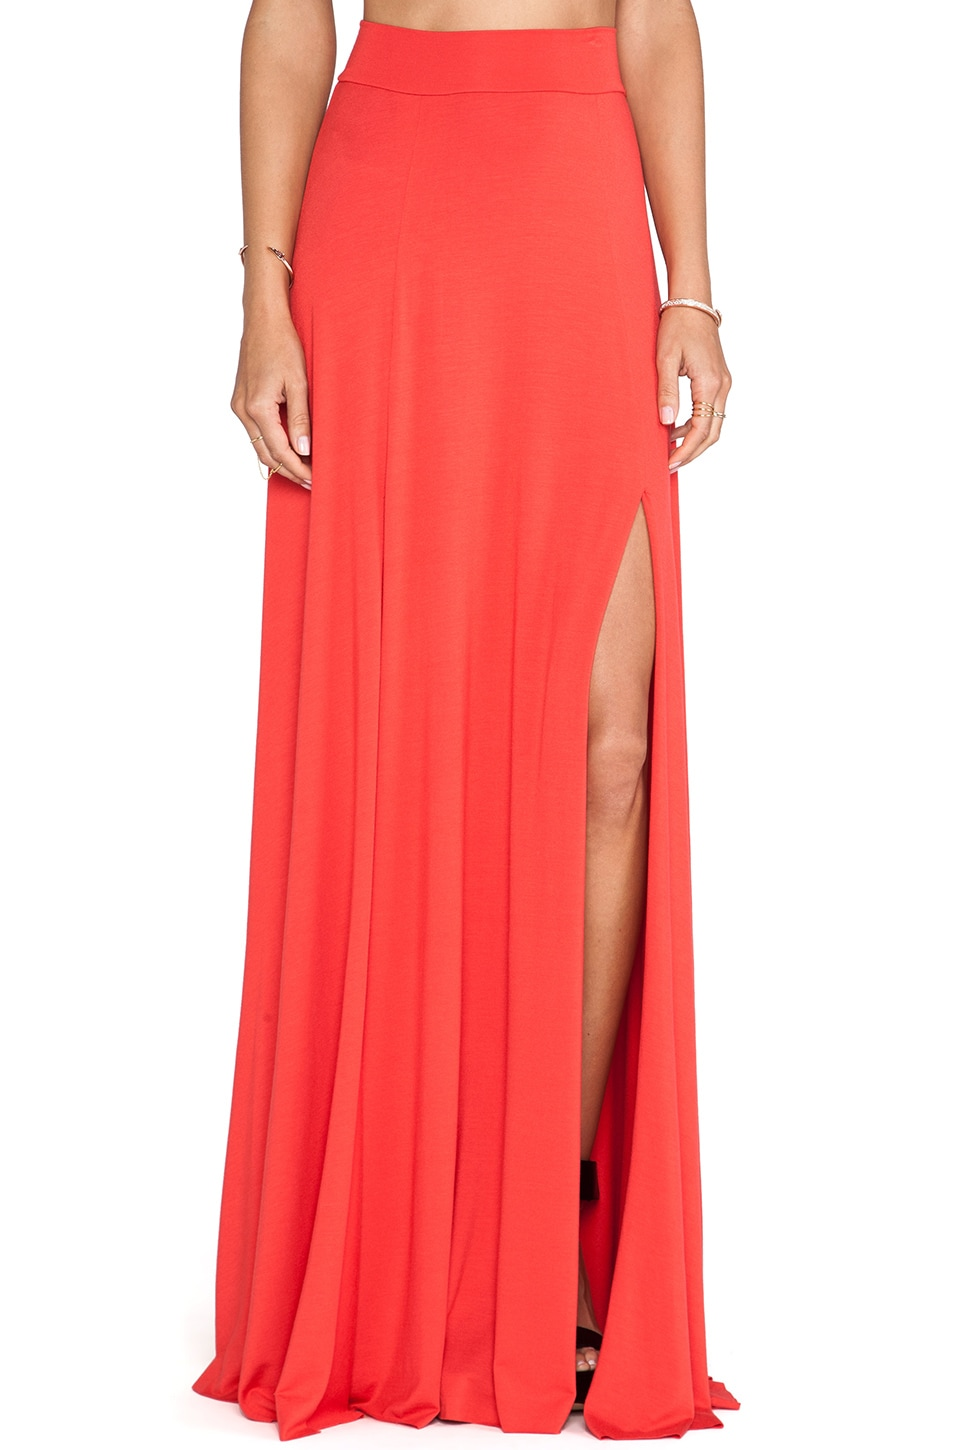 Rachel Pally X REVOLVE Josefine Maxi Skirt in Pom Pom